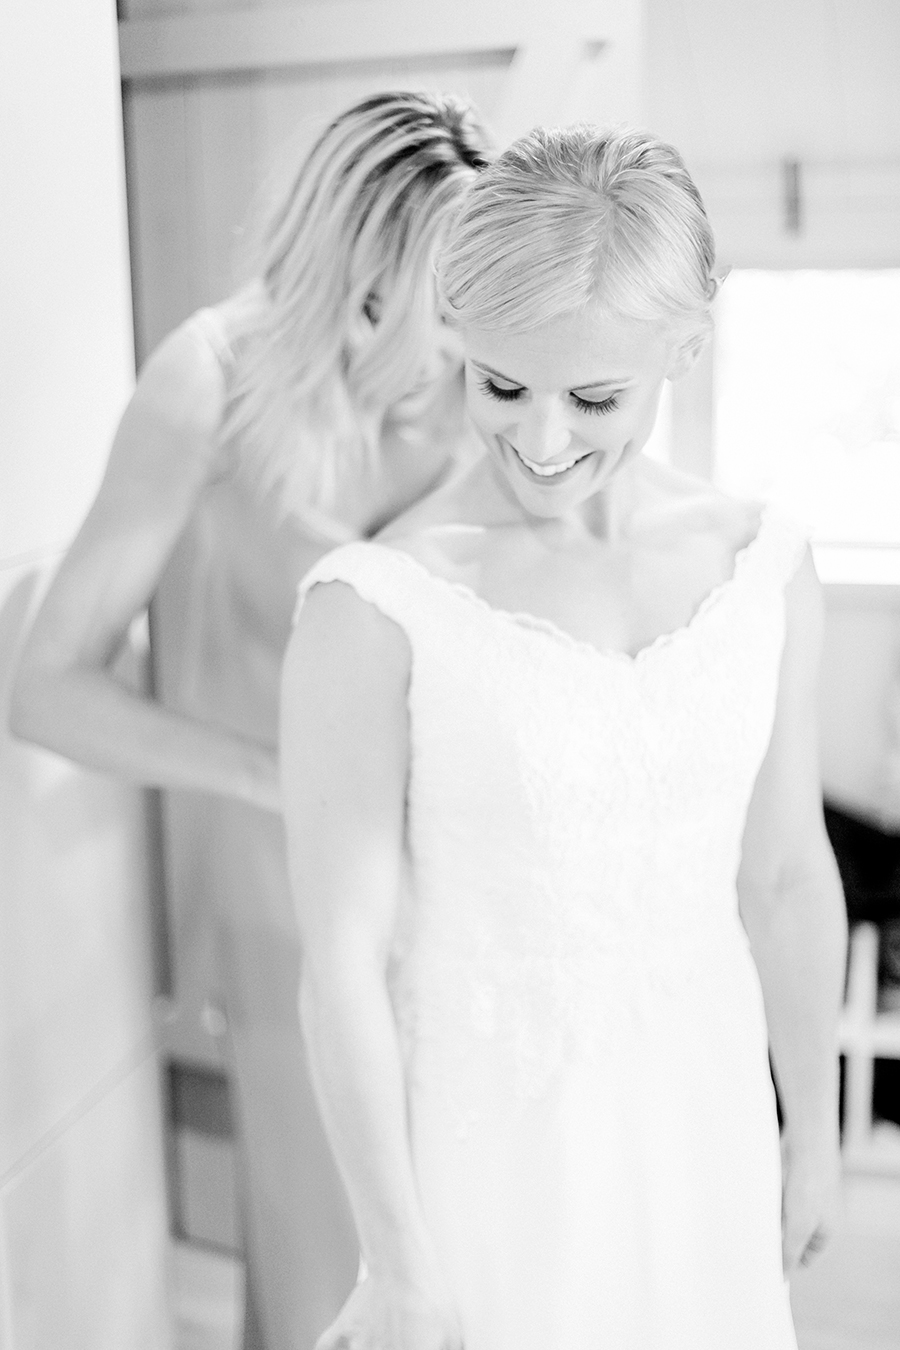 rebeccahansson.com-wedding-Elin-and-Peder-august-13th-2016-(83).jpg